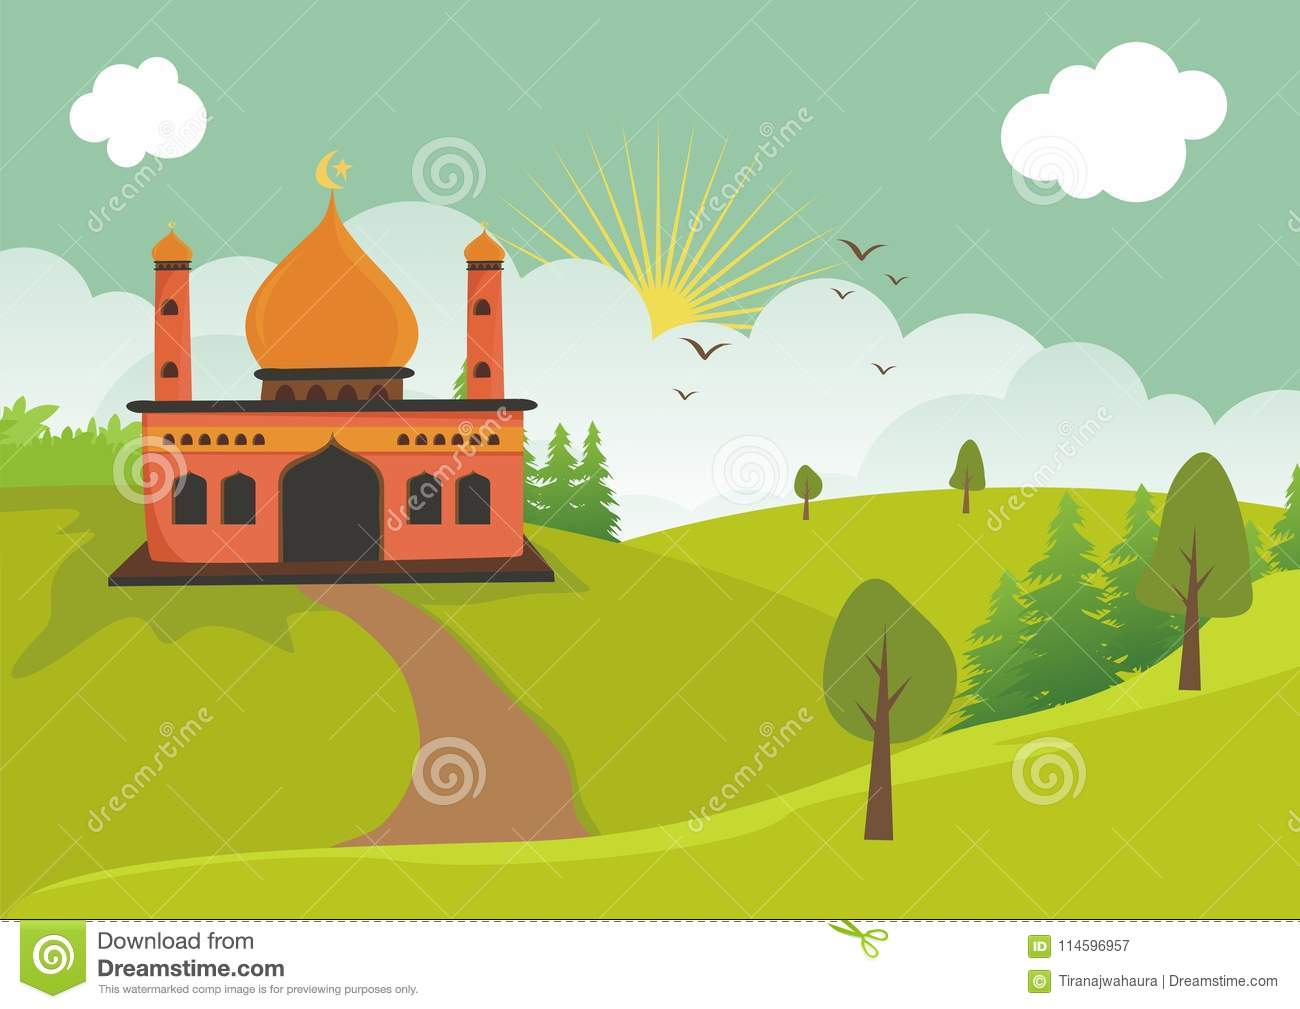 cartoon islamic mosque with landscape stock vector illustration of beautiful grass 114596957 https www dreamstime com cartoon islamic mosque vector illustration lovely landscape beautiful sky cloud backdrops cartoon islamic mosque image114596957